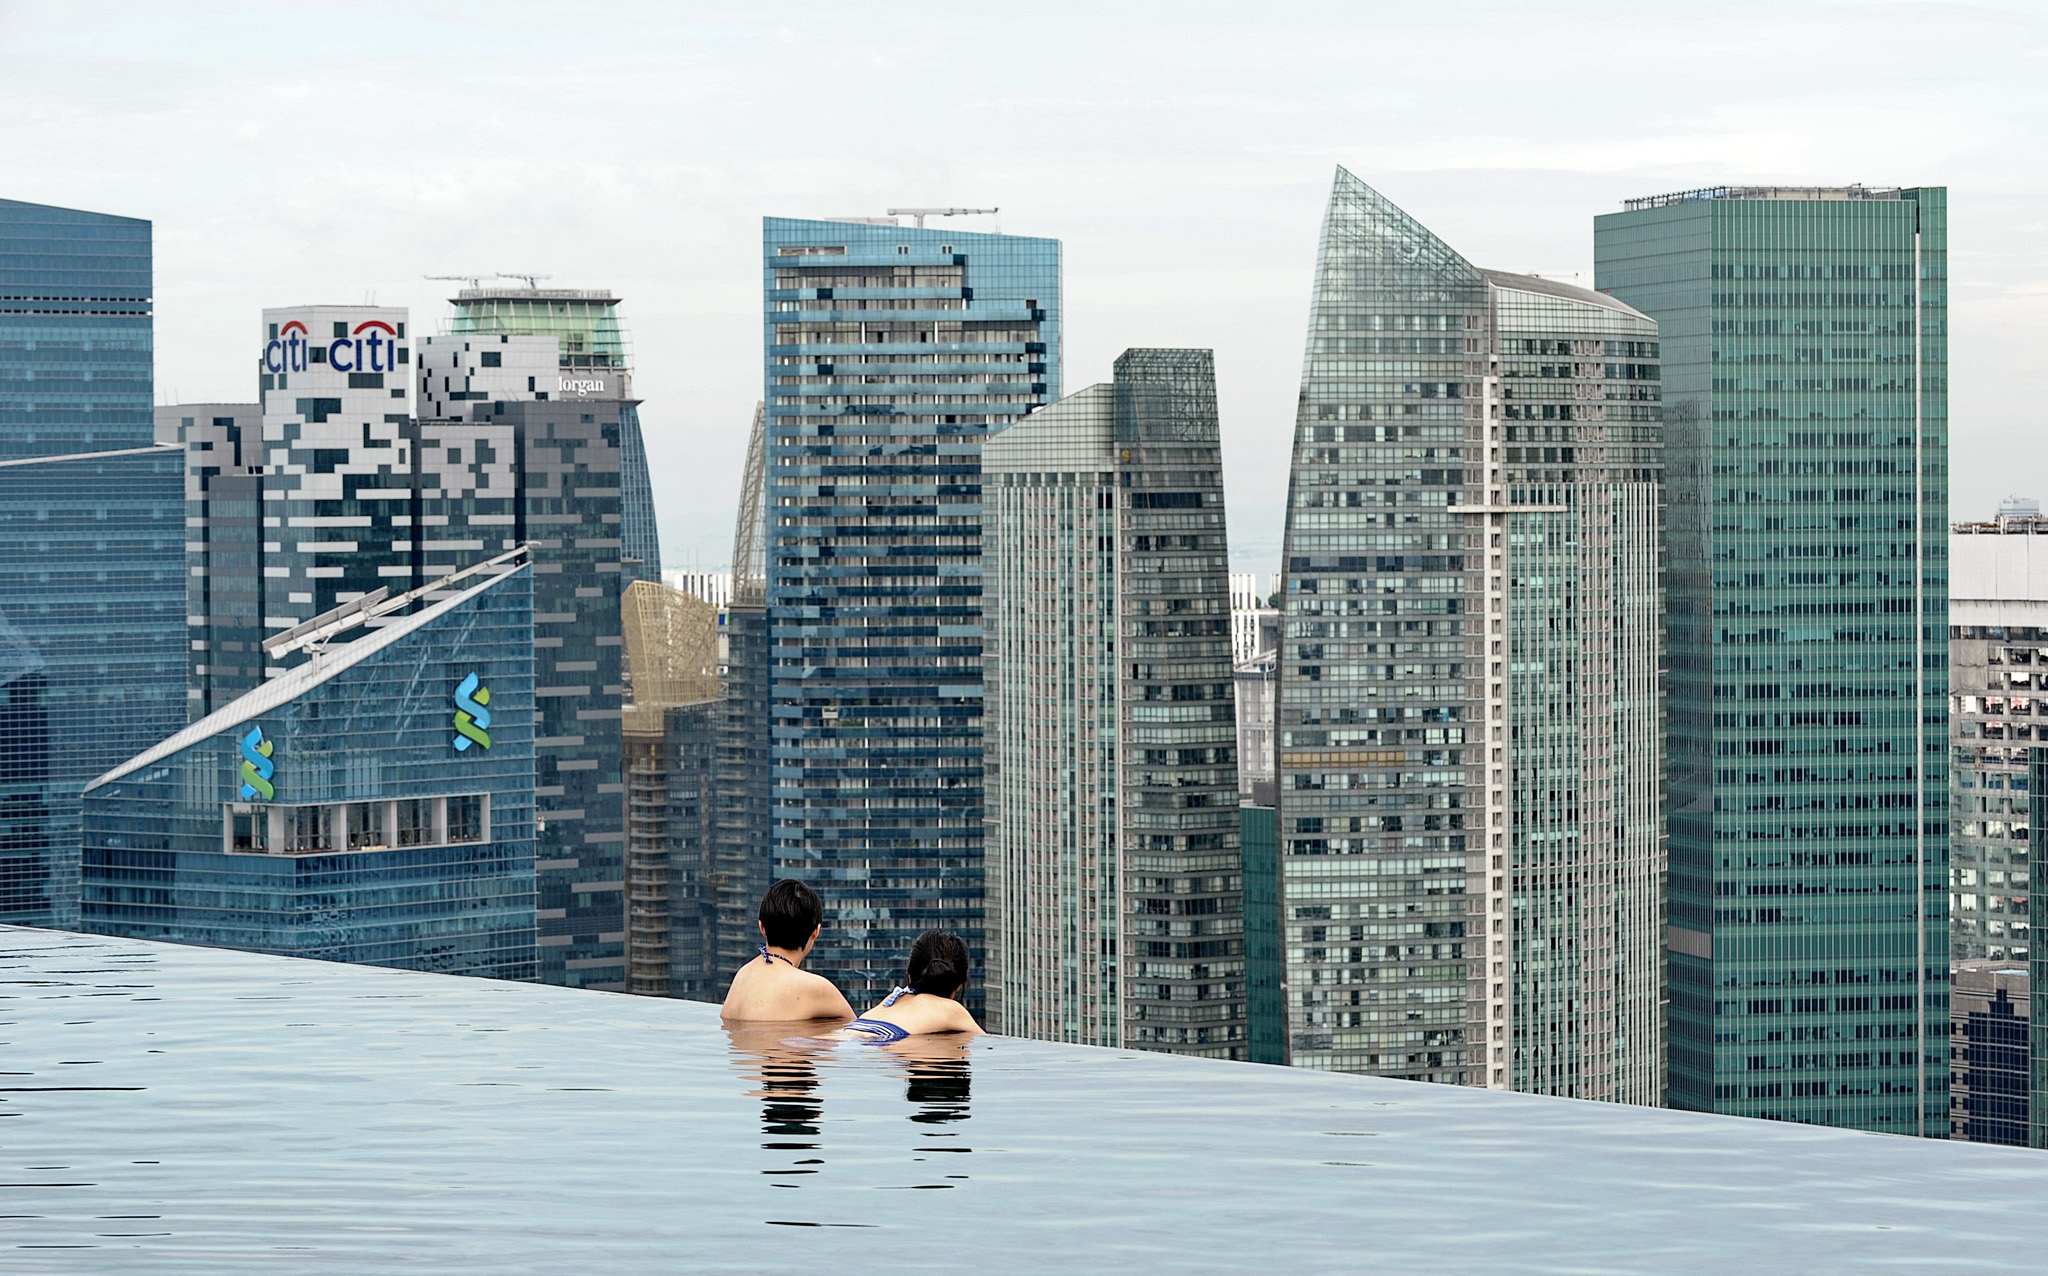 Visitors look at a view of the city skyl...Visitors look at a view of the city skyline from the rooftop pool of the Marina Bay Sands resort hotel in Singapore on May 20, 2014. Singapore's trade-reliant economy expanded a seasonally adjusted 2.3 percent quarter-on-quarter the trade ministry said May 20. AFP PHOTO/ROSLAN RAHMANROSLAN RAHMAN/AFP/Getty Images